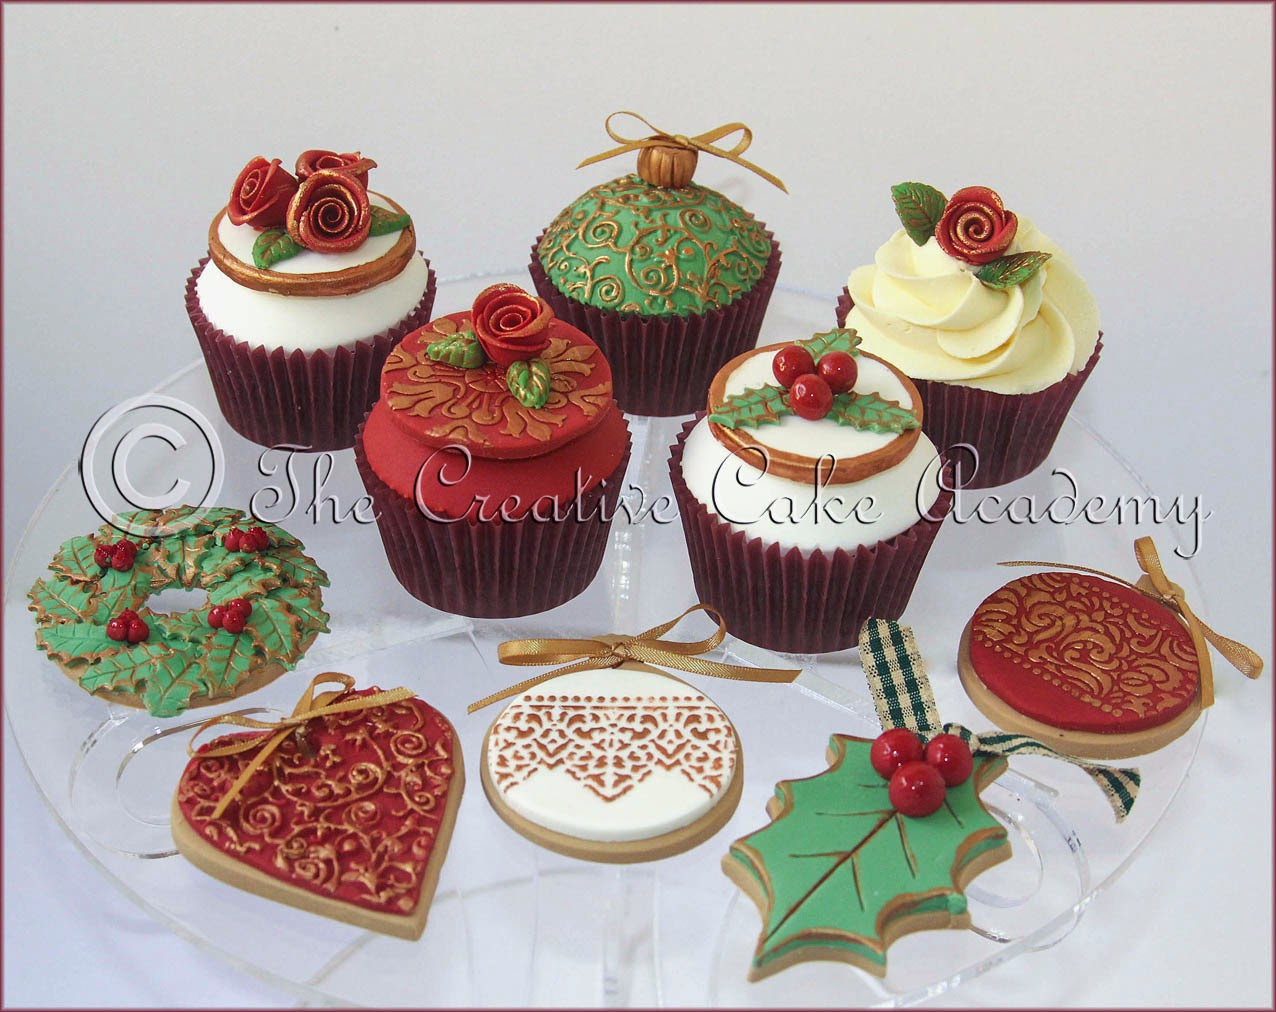 8 Christmas Cupcakes And Cakes And Cookies Photo Rudolph The Red